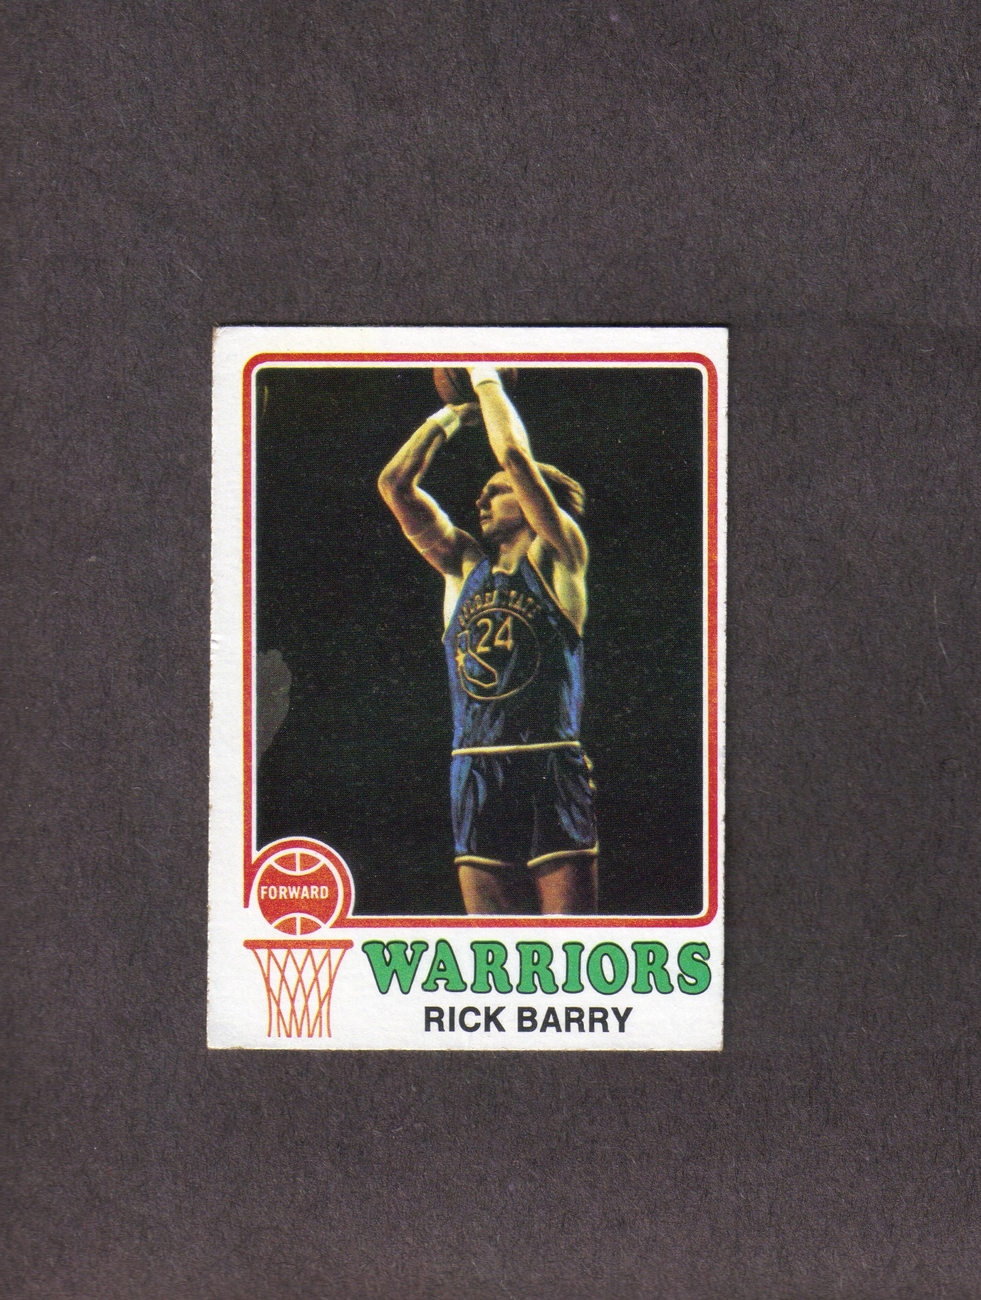 1973-74 Topps # 90 Rick Barry Golden State Warriors